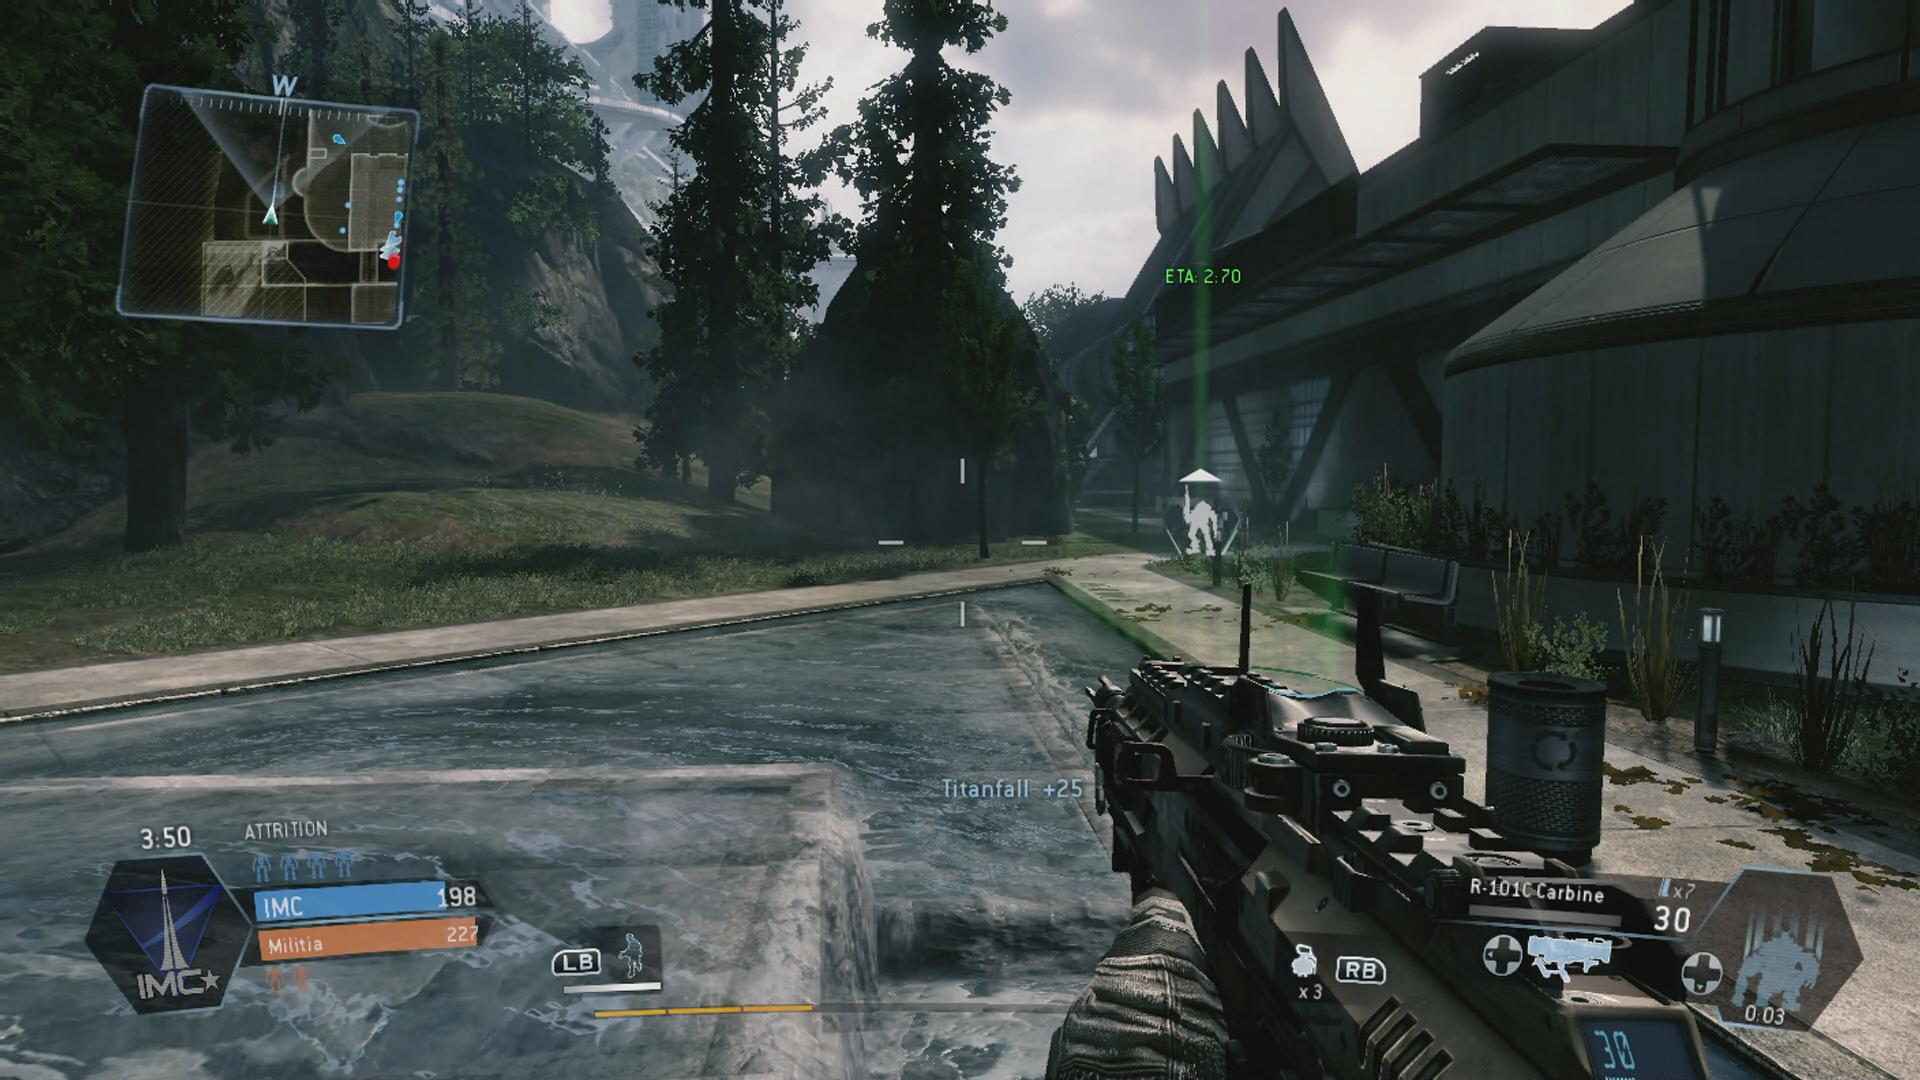 Titanfall Xbox One Direct Feed Screenshots Leaked Pixel